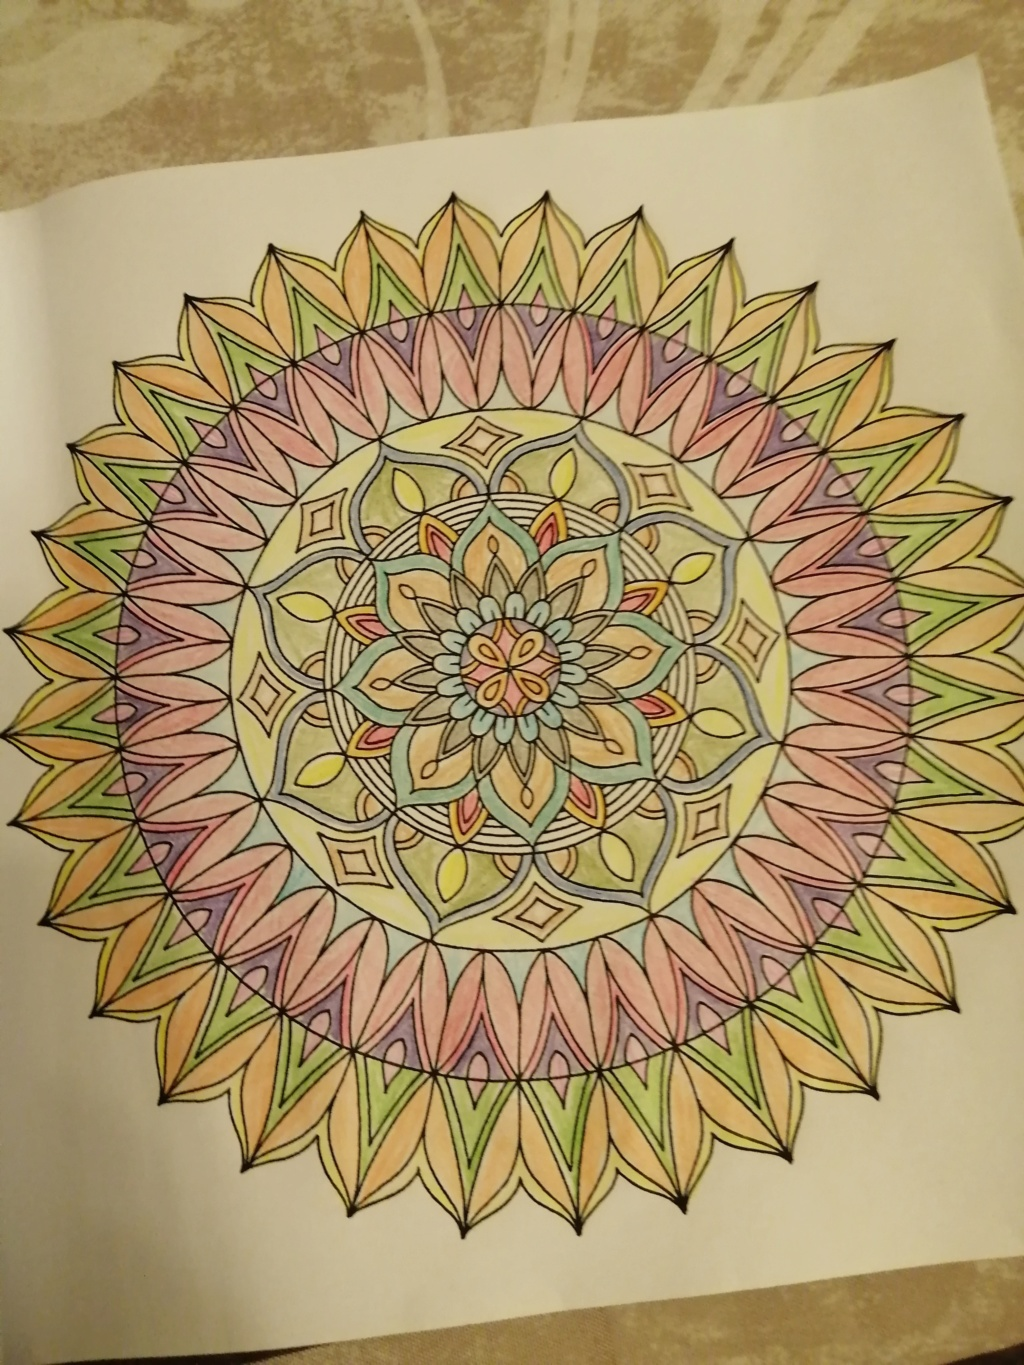 coloriage anti-stress pour adulte - Page 15 00410